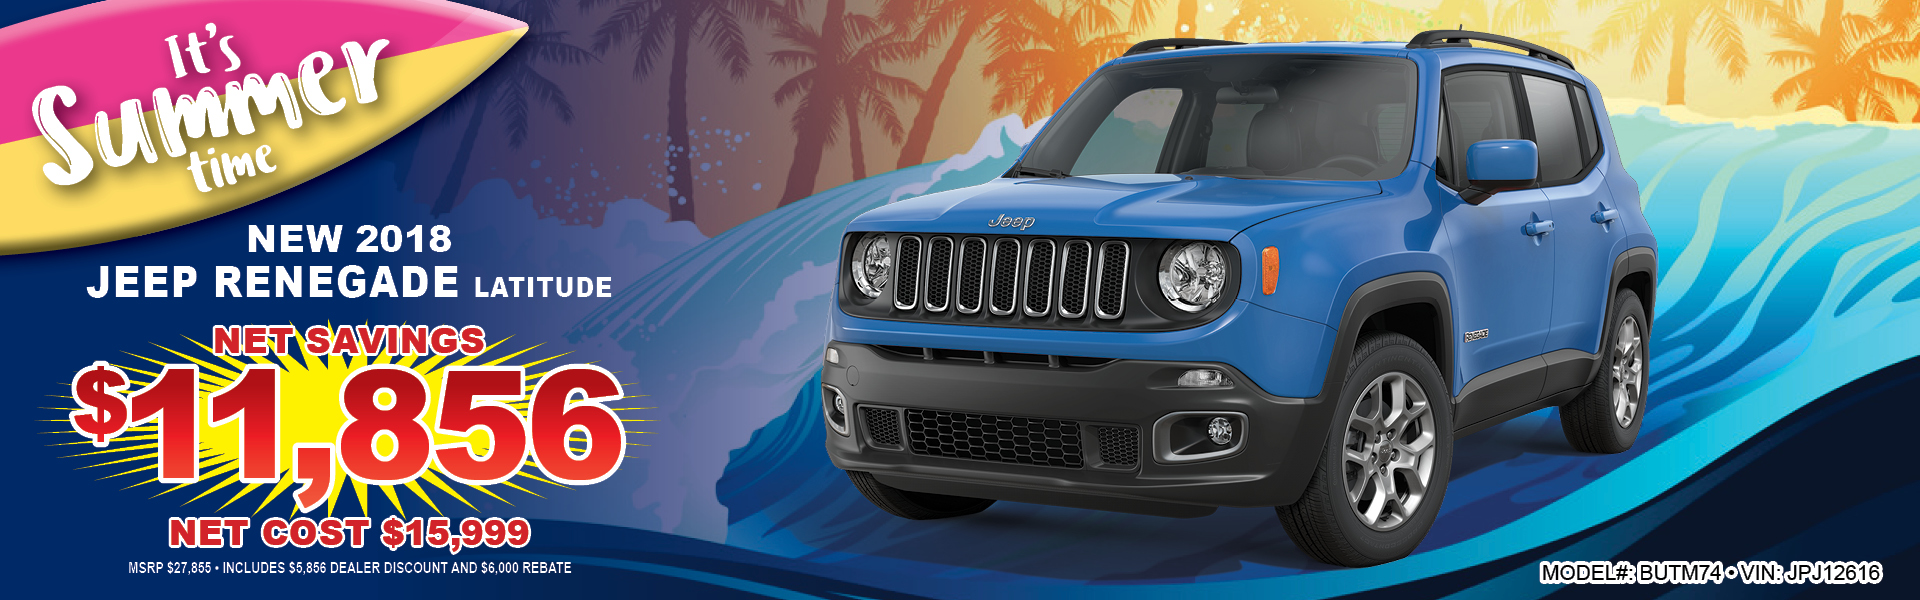 Jeep Renegade $15999